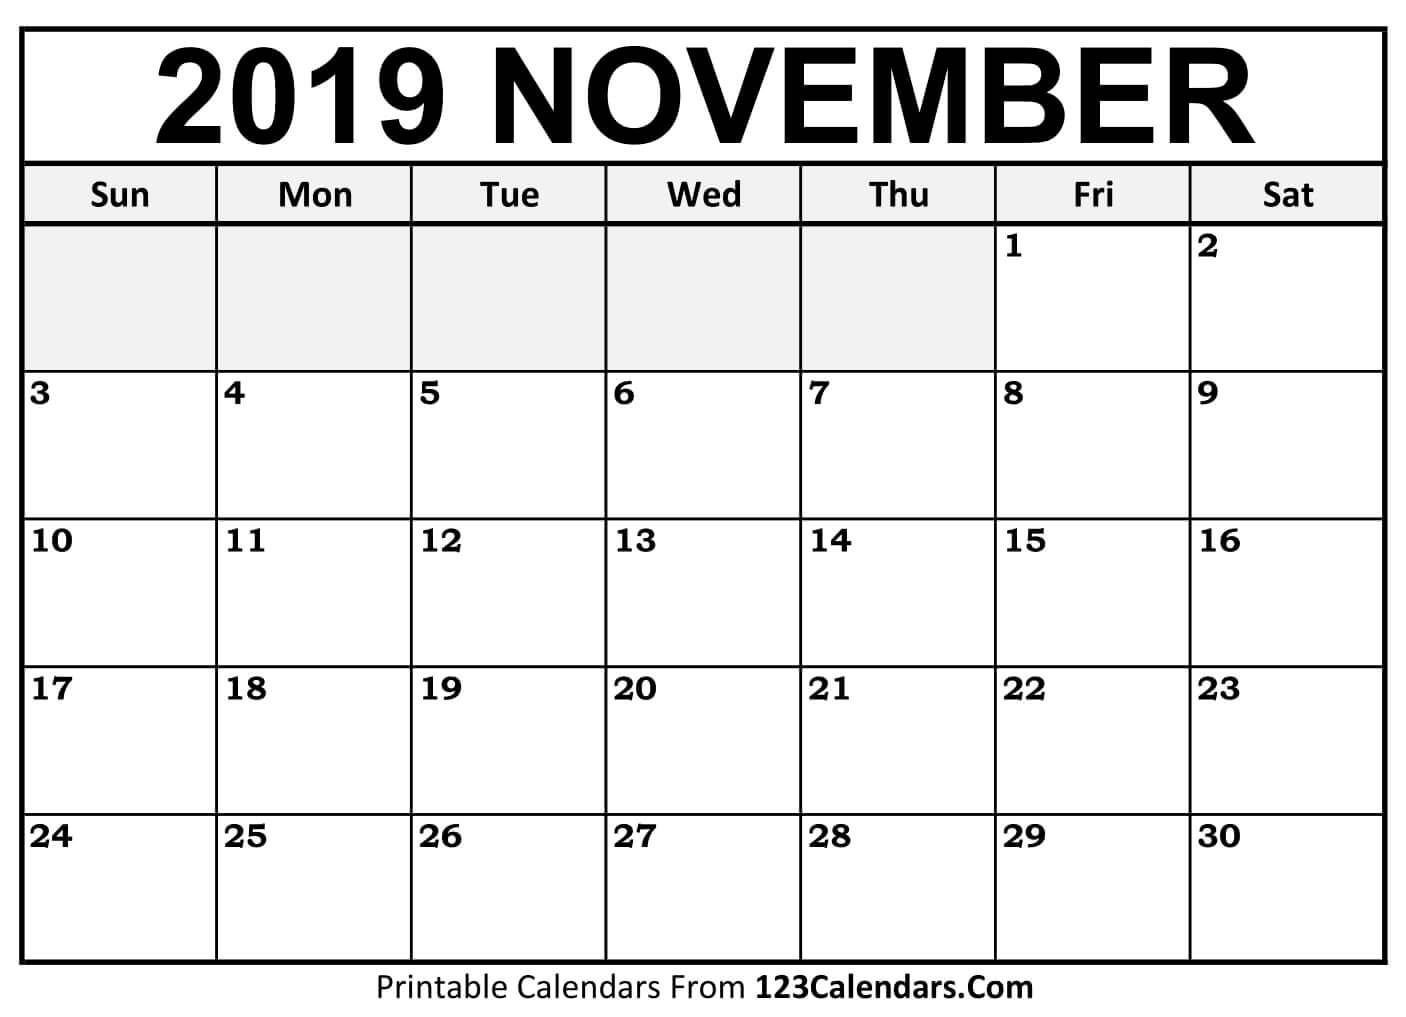 November 2019 Calendar PDF Word Excel Templates